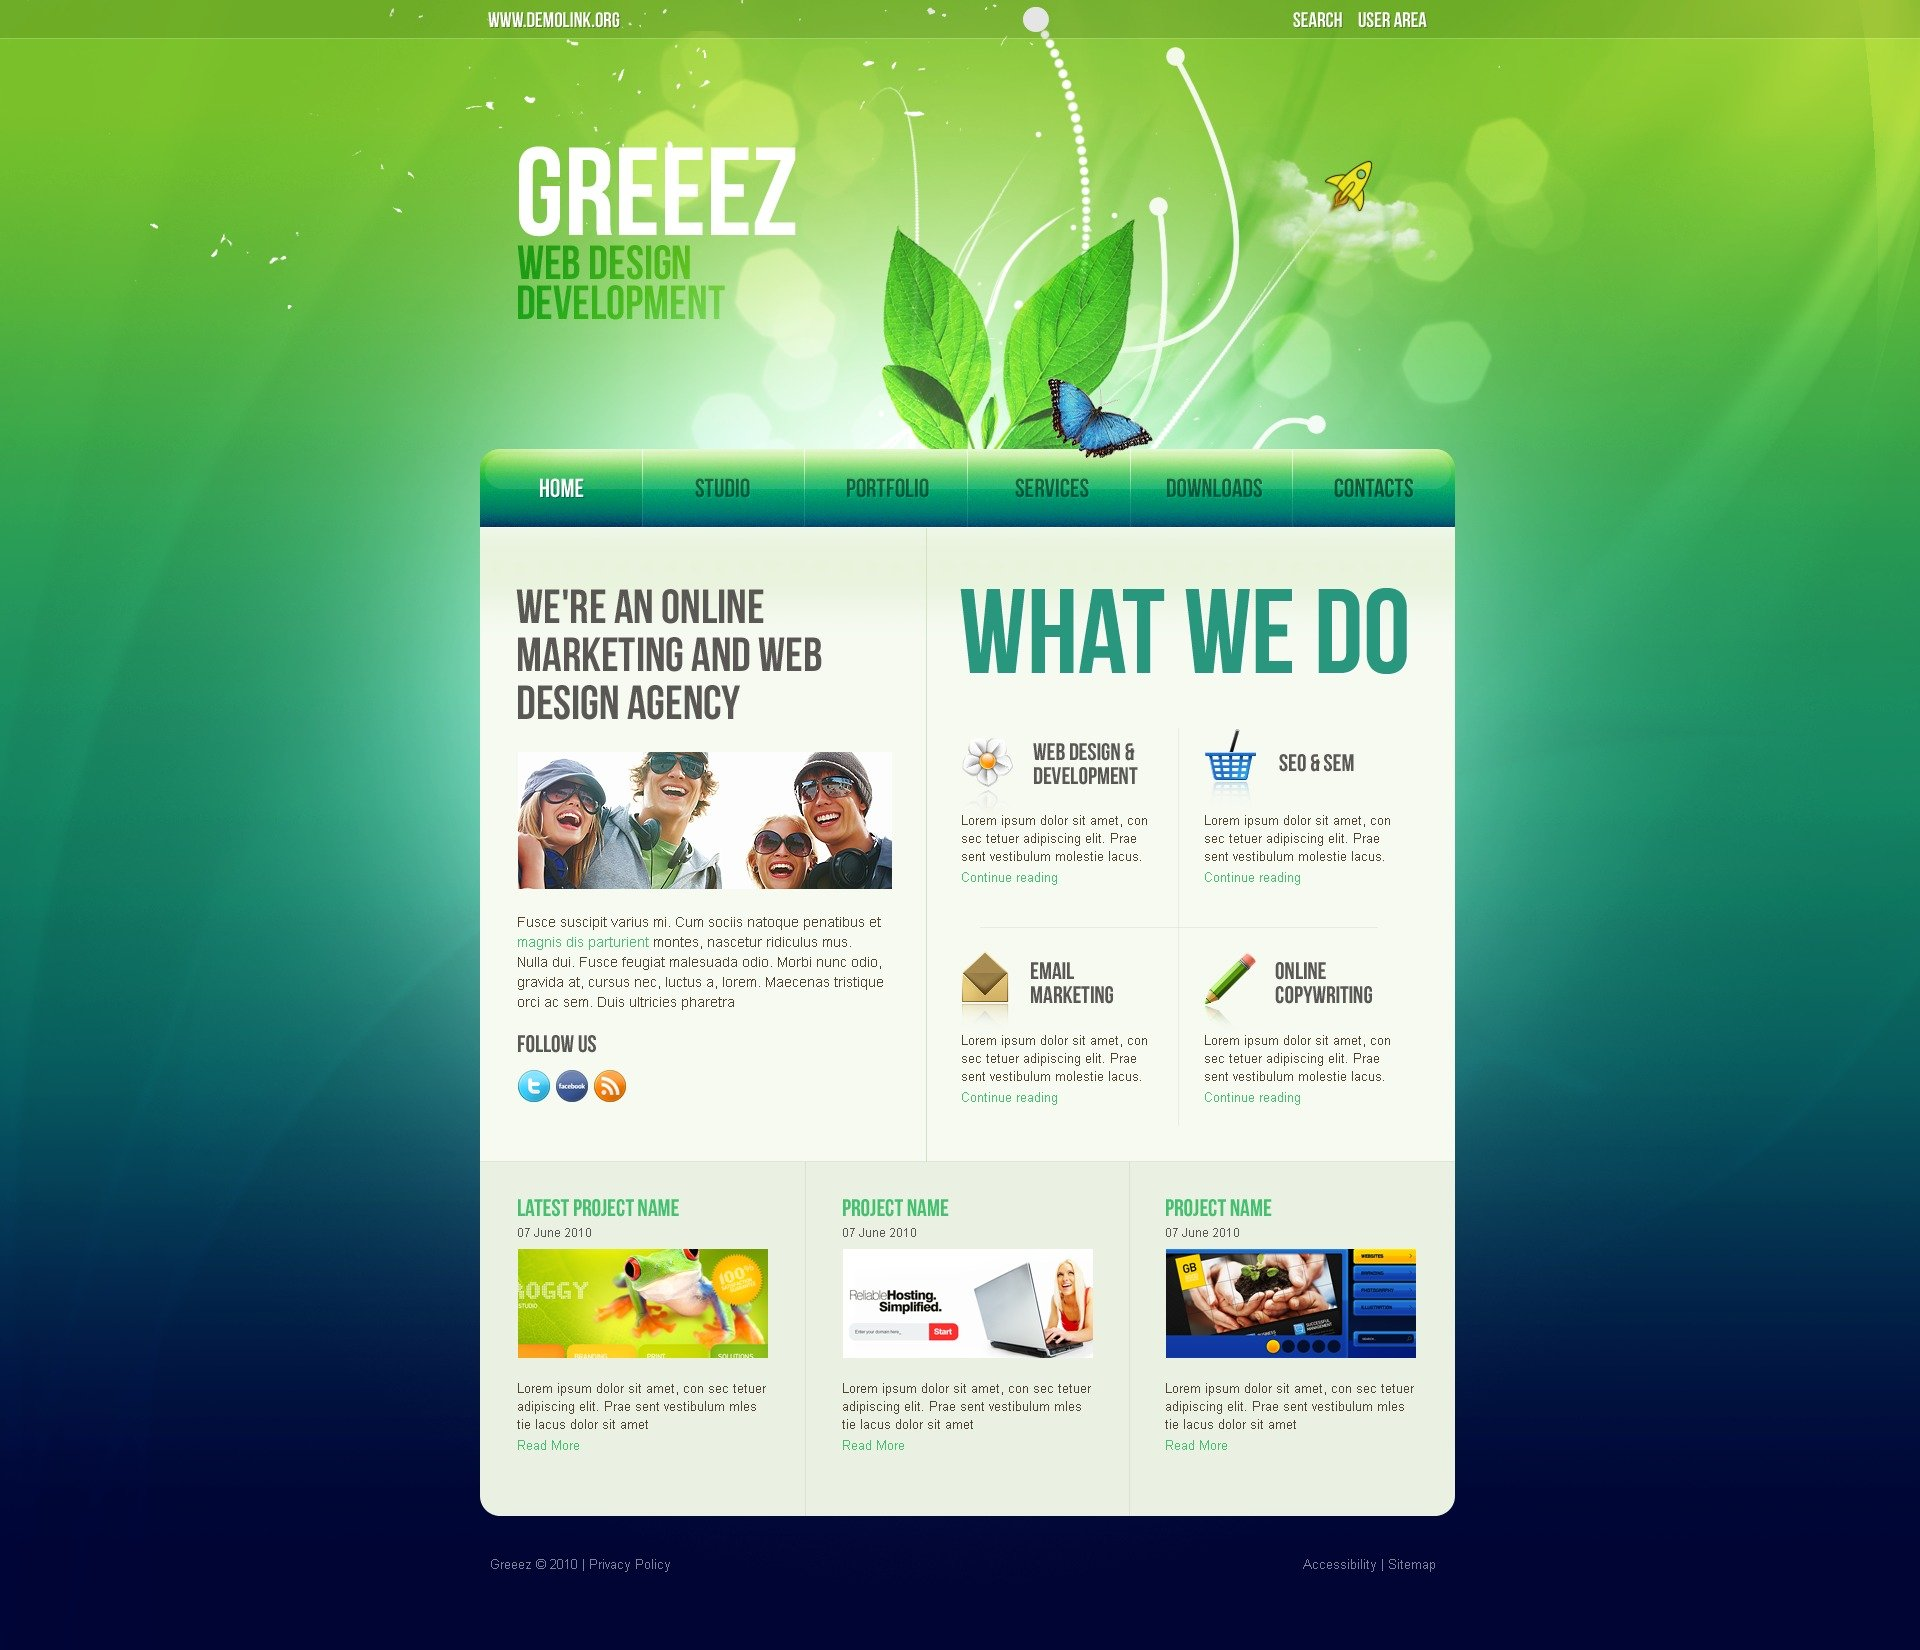 The Greeez Design Studio PSD Design 54312, one of the best PSD templates of its kind (web design, flash 8, wide), also known as greeez design studio PSD template, creative art gallery PSD template, artists PSD template, painting PSD template, painters PSD template, web development PSD template, webmasters PSD template, designers PSD template, internet PSD template, www PSD template, sites PSD template, web design PSD template, webpage PSD template, personal portfolio and related with greeez design studio, creative art gallery, artists, painting, painters, web development, webmasters, designers, internet, www, sites, web design, webpage, personal portfolio, etc.